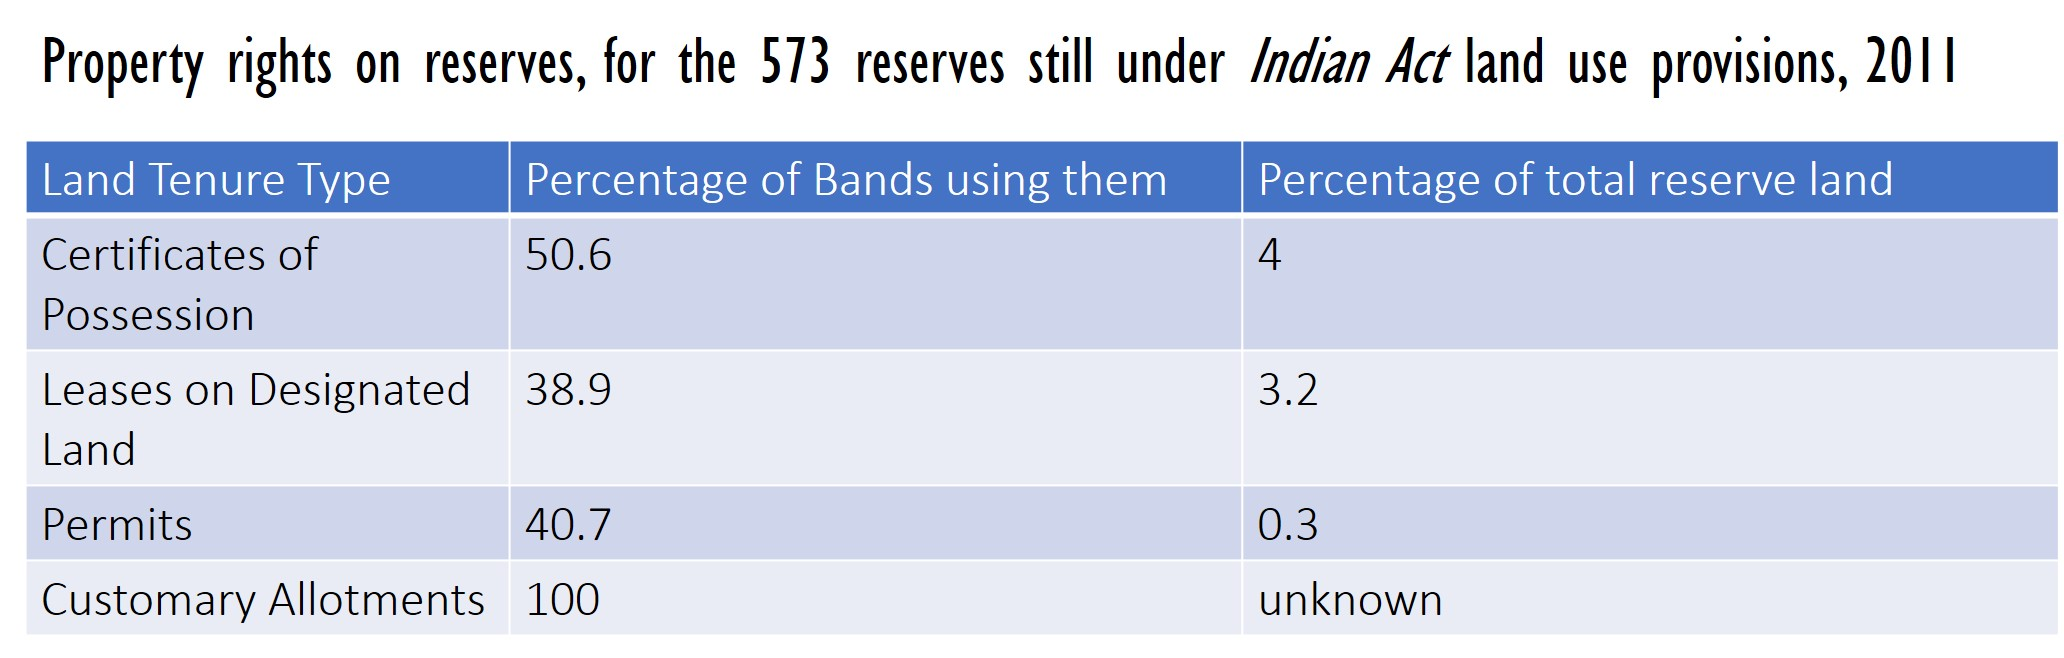 Property rights on reserves, for the 573 reserves still under Indian Act land use provisions, 2011